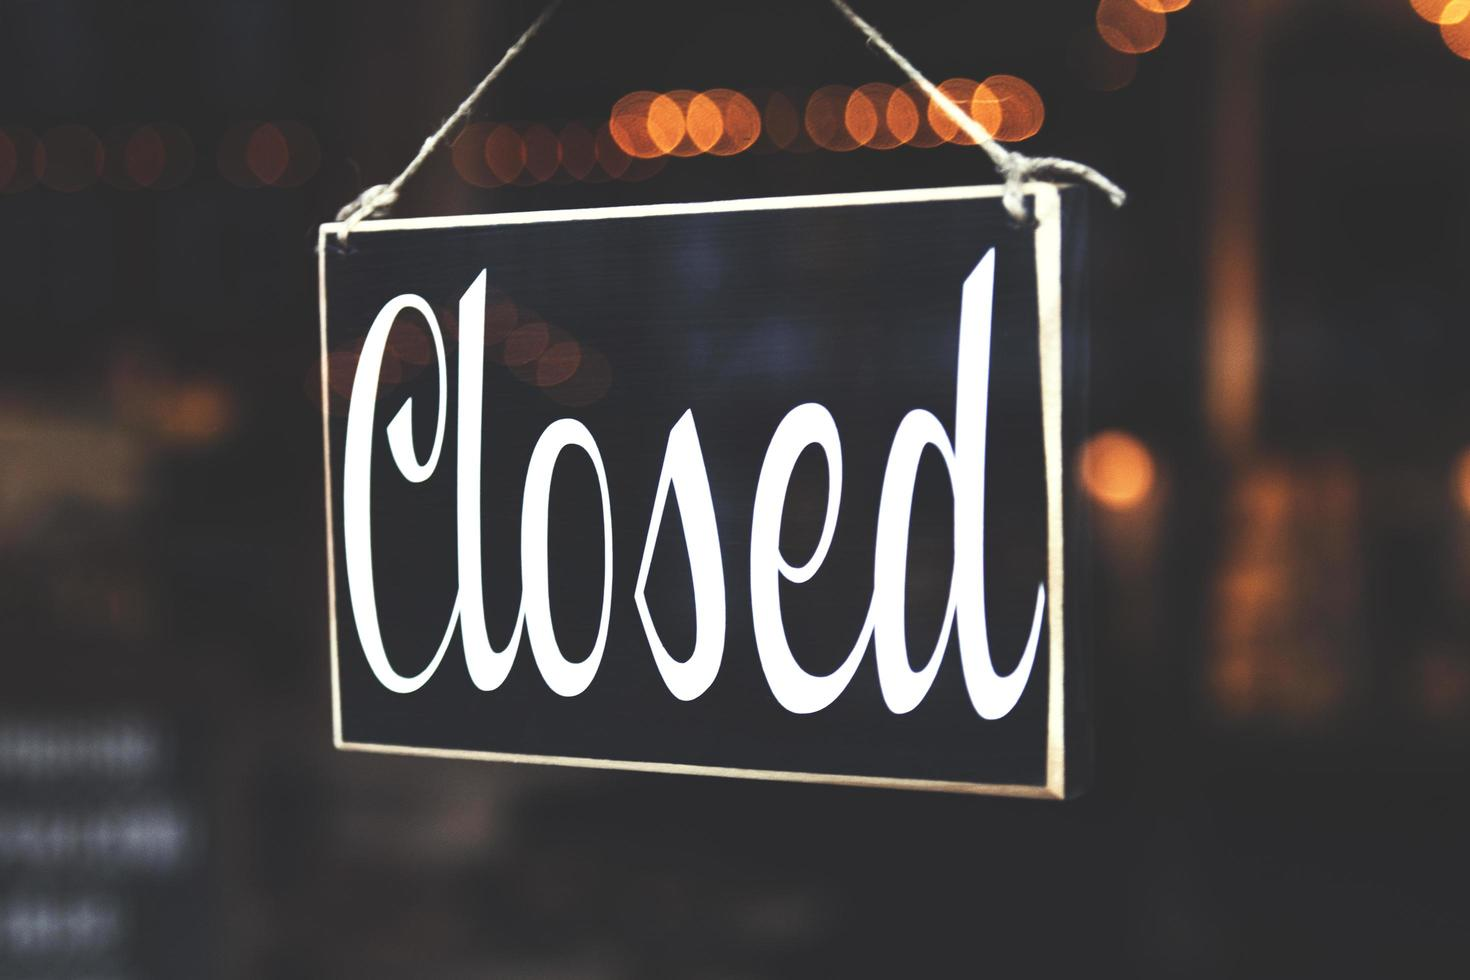 Closed sign in business window photo